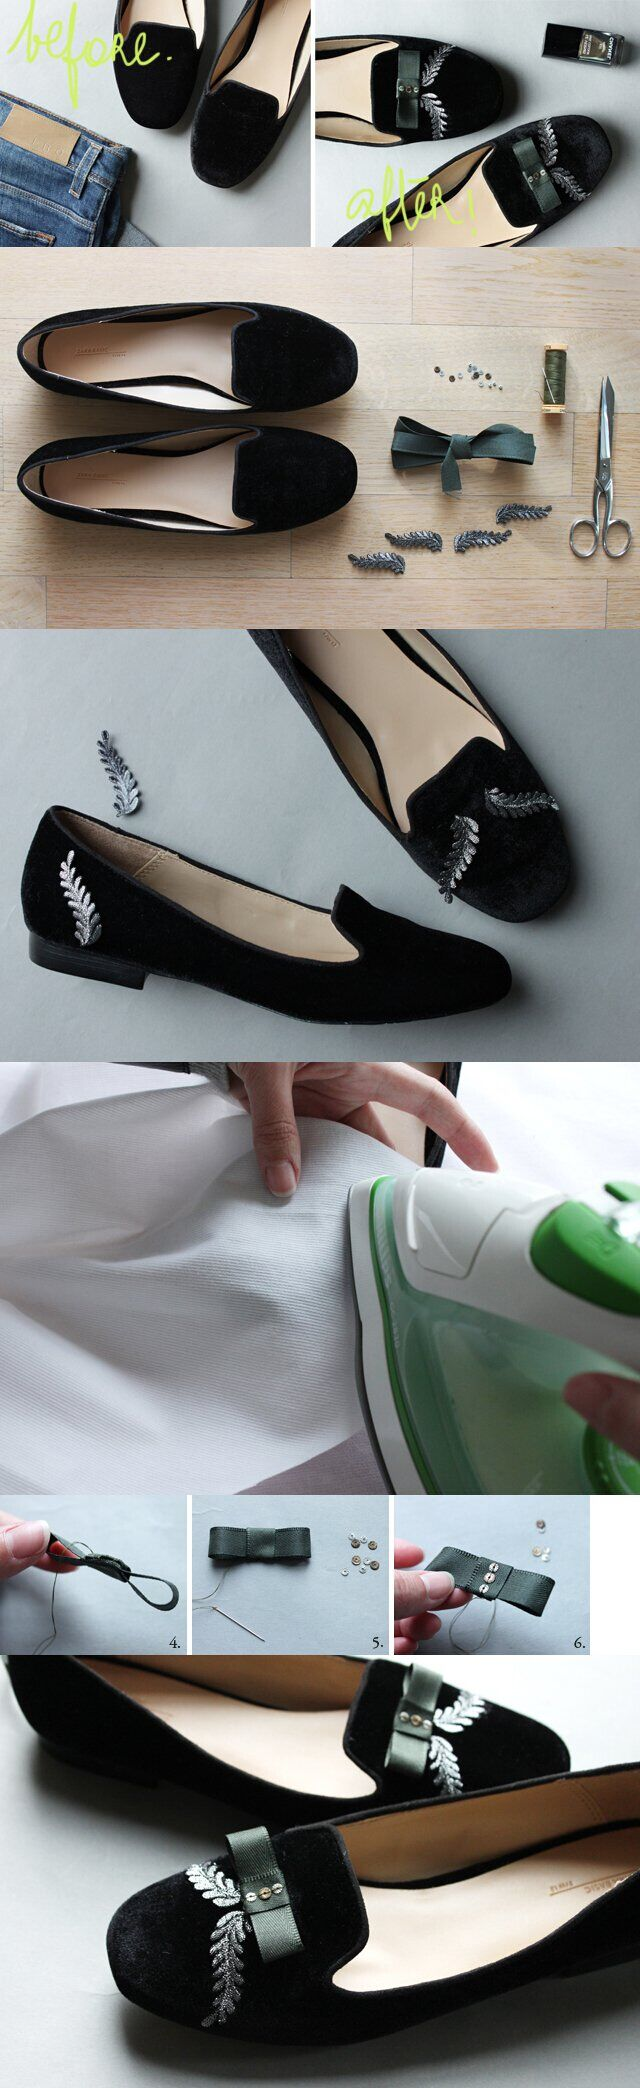 Cut Shoes Diy